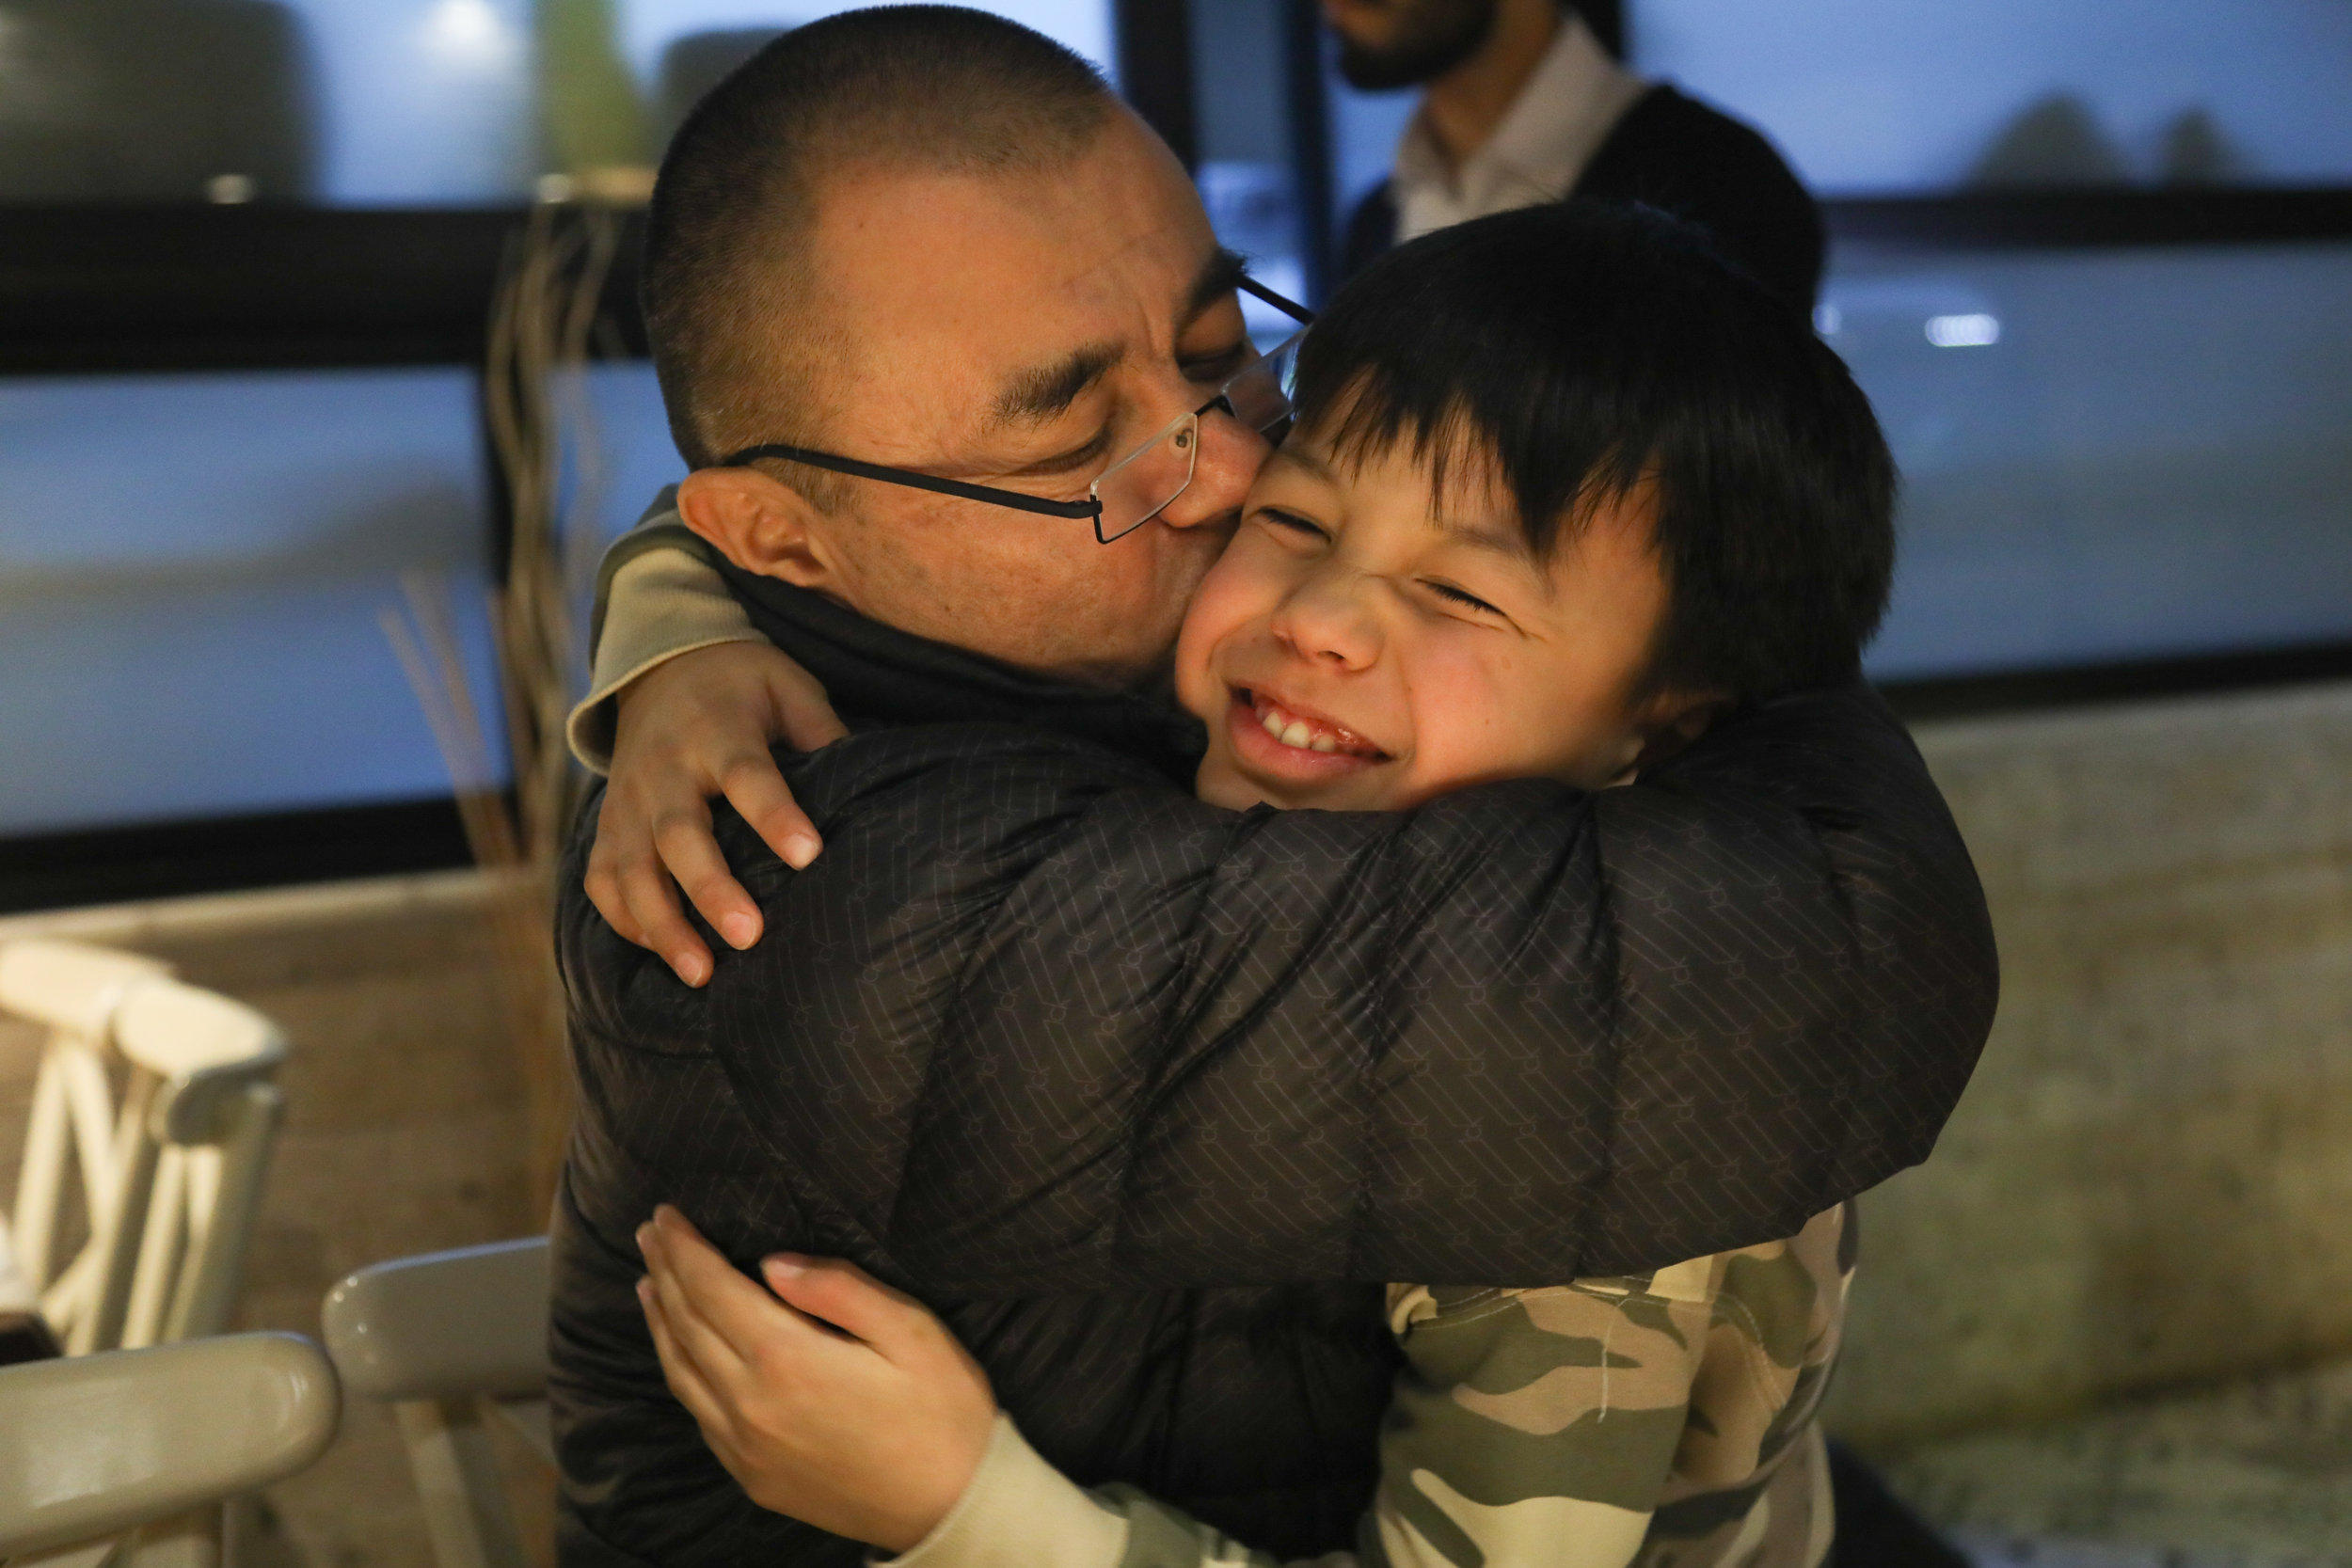 Kerem Mamut embraces his son Babur, whom he did not see during his three-month detention